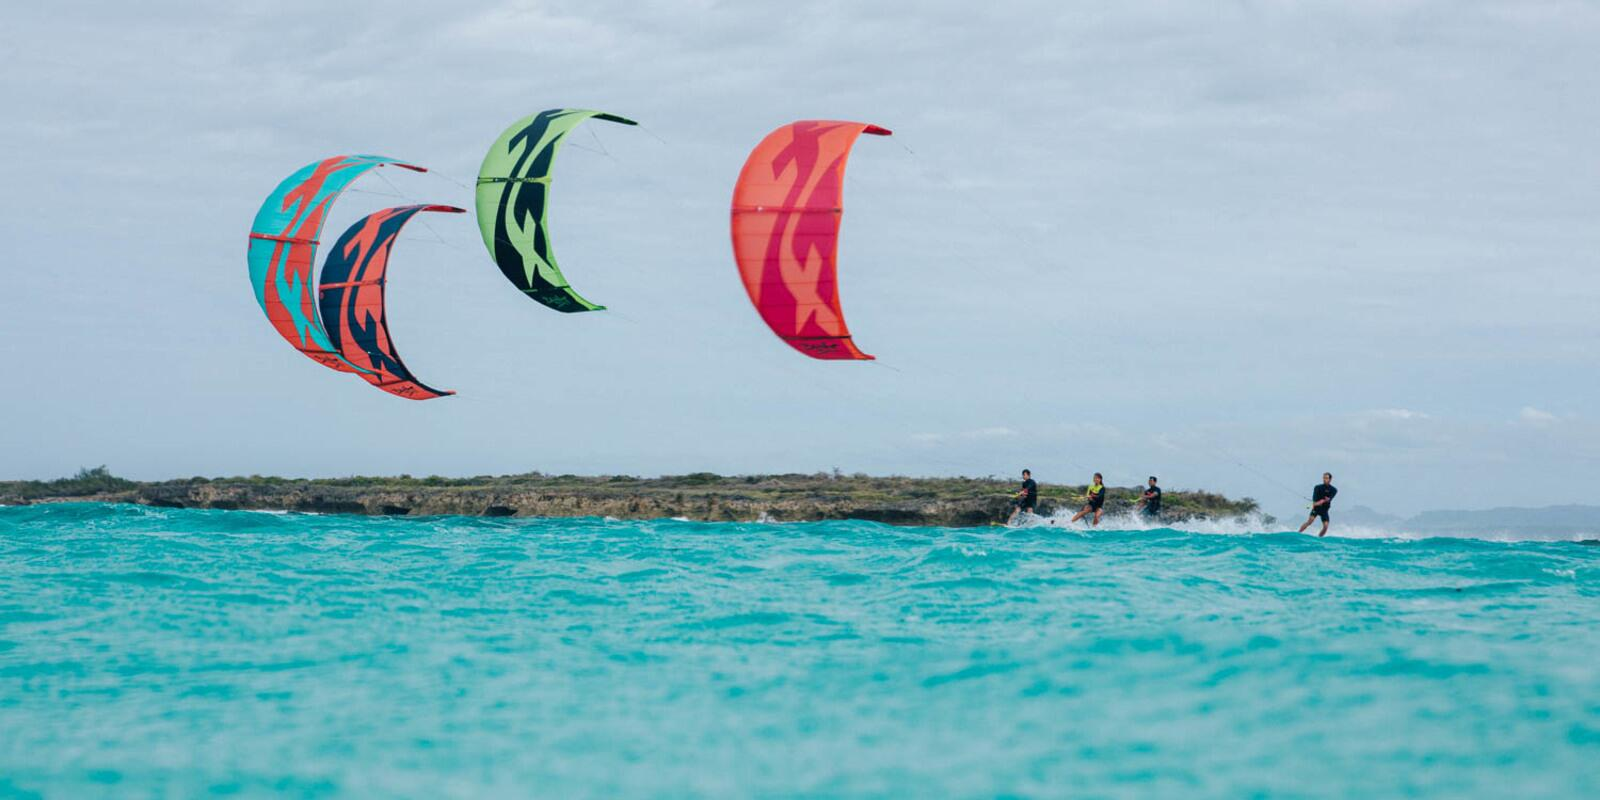 8 Days to Antigua and Barbuda - Kitesurfing, Hiking and Kayaking